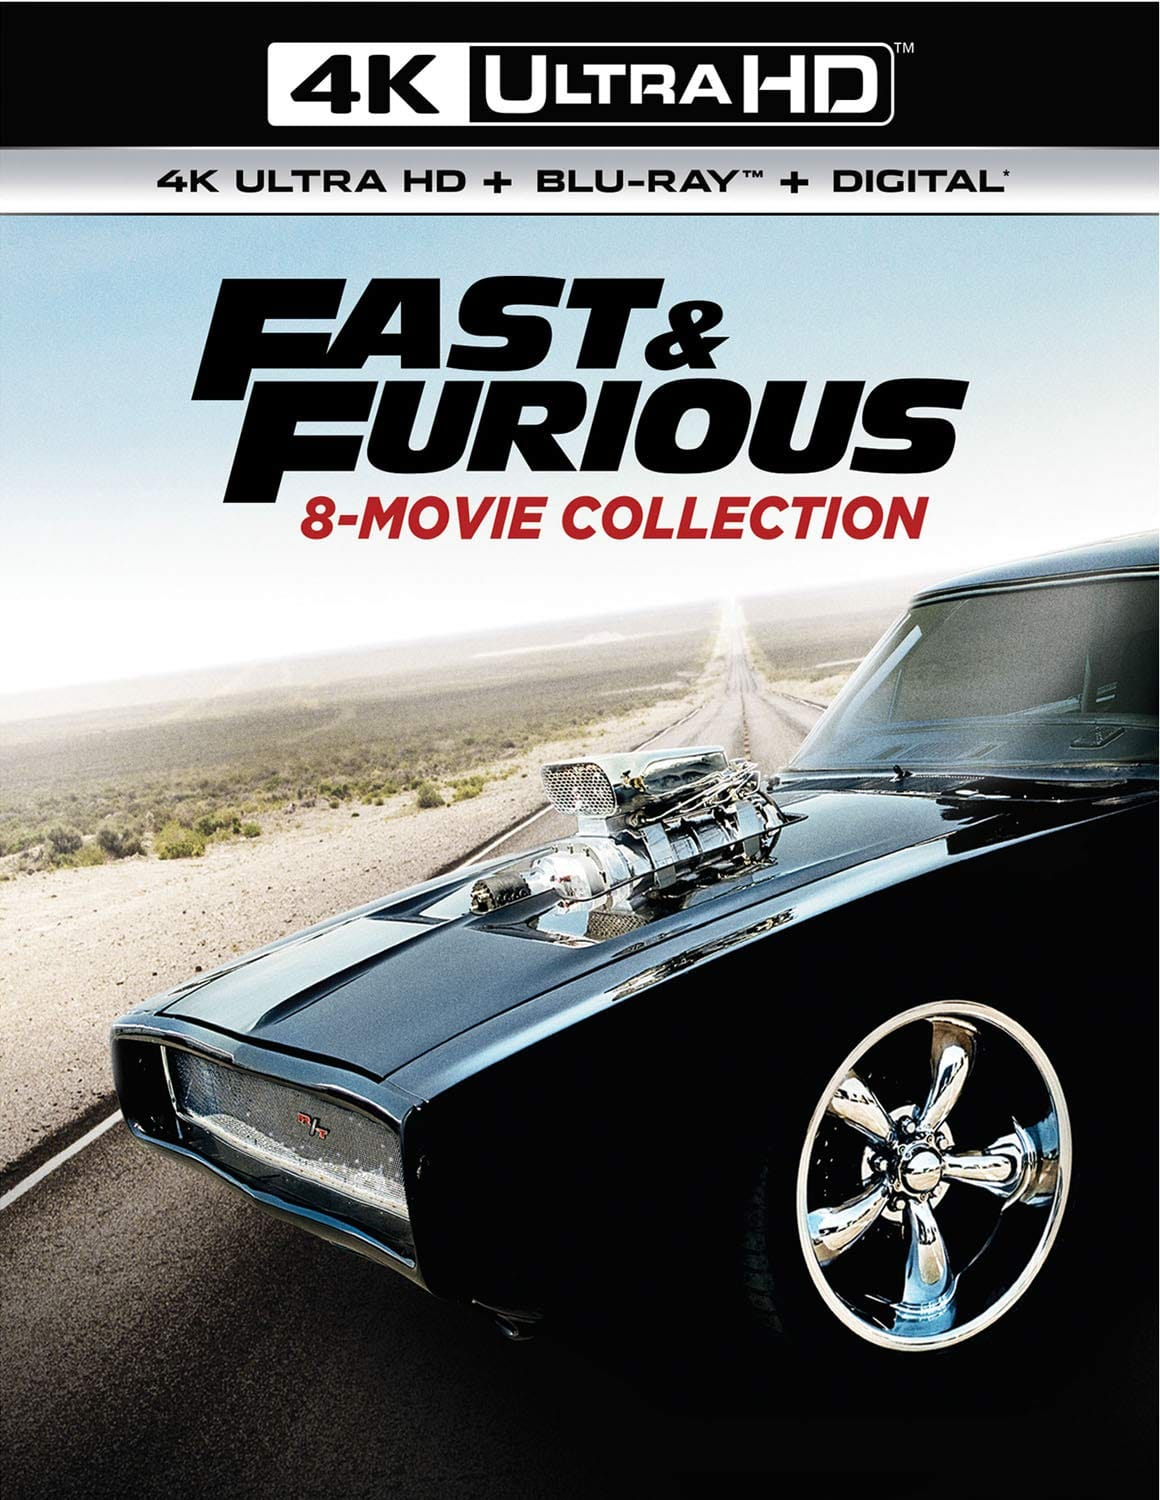 Fast & Furious: 8-movie Collection (4K Ultra HD) [UHD] - $44.99. Free shipping